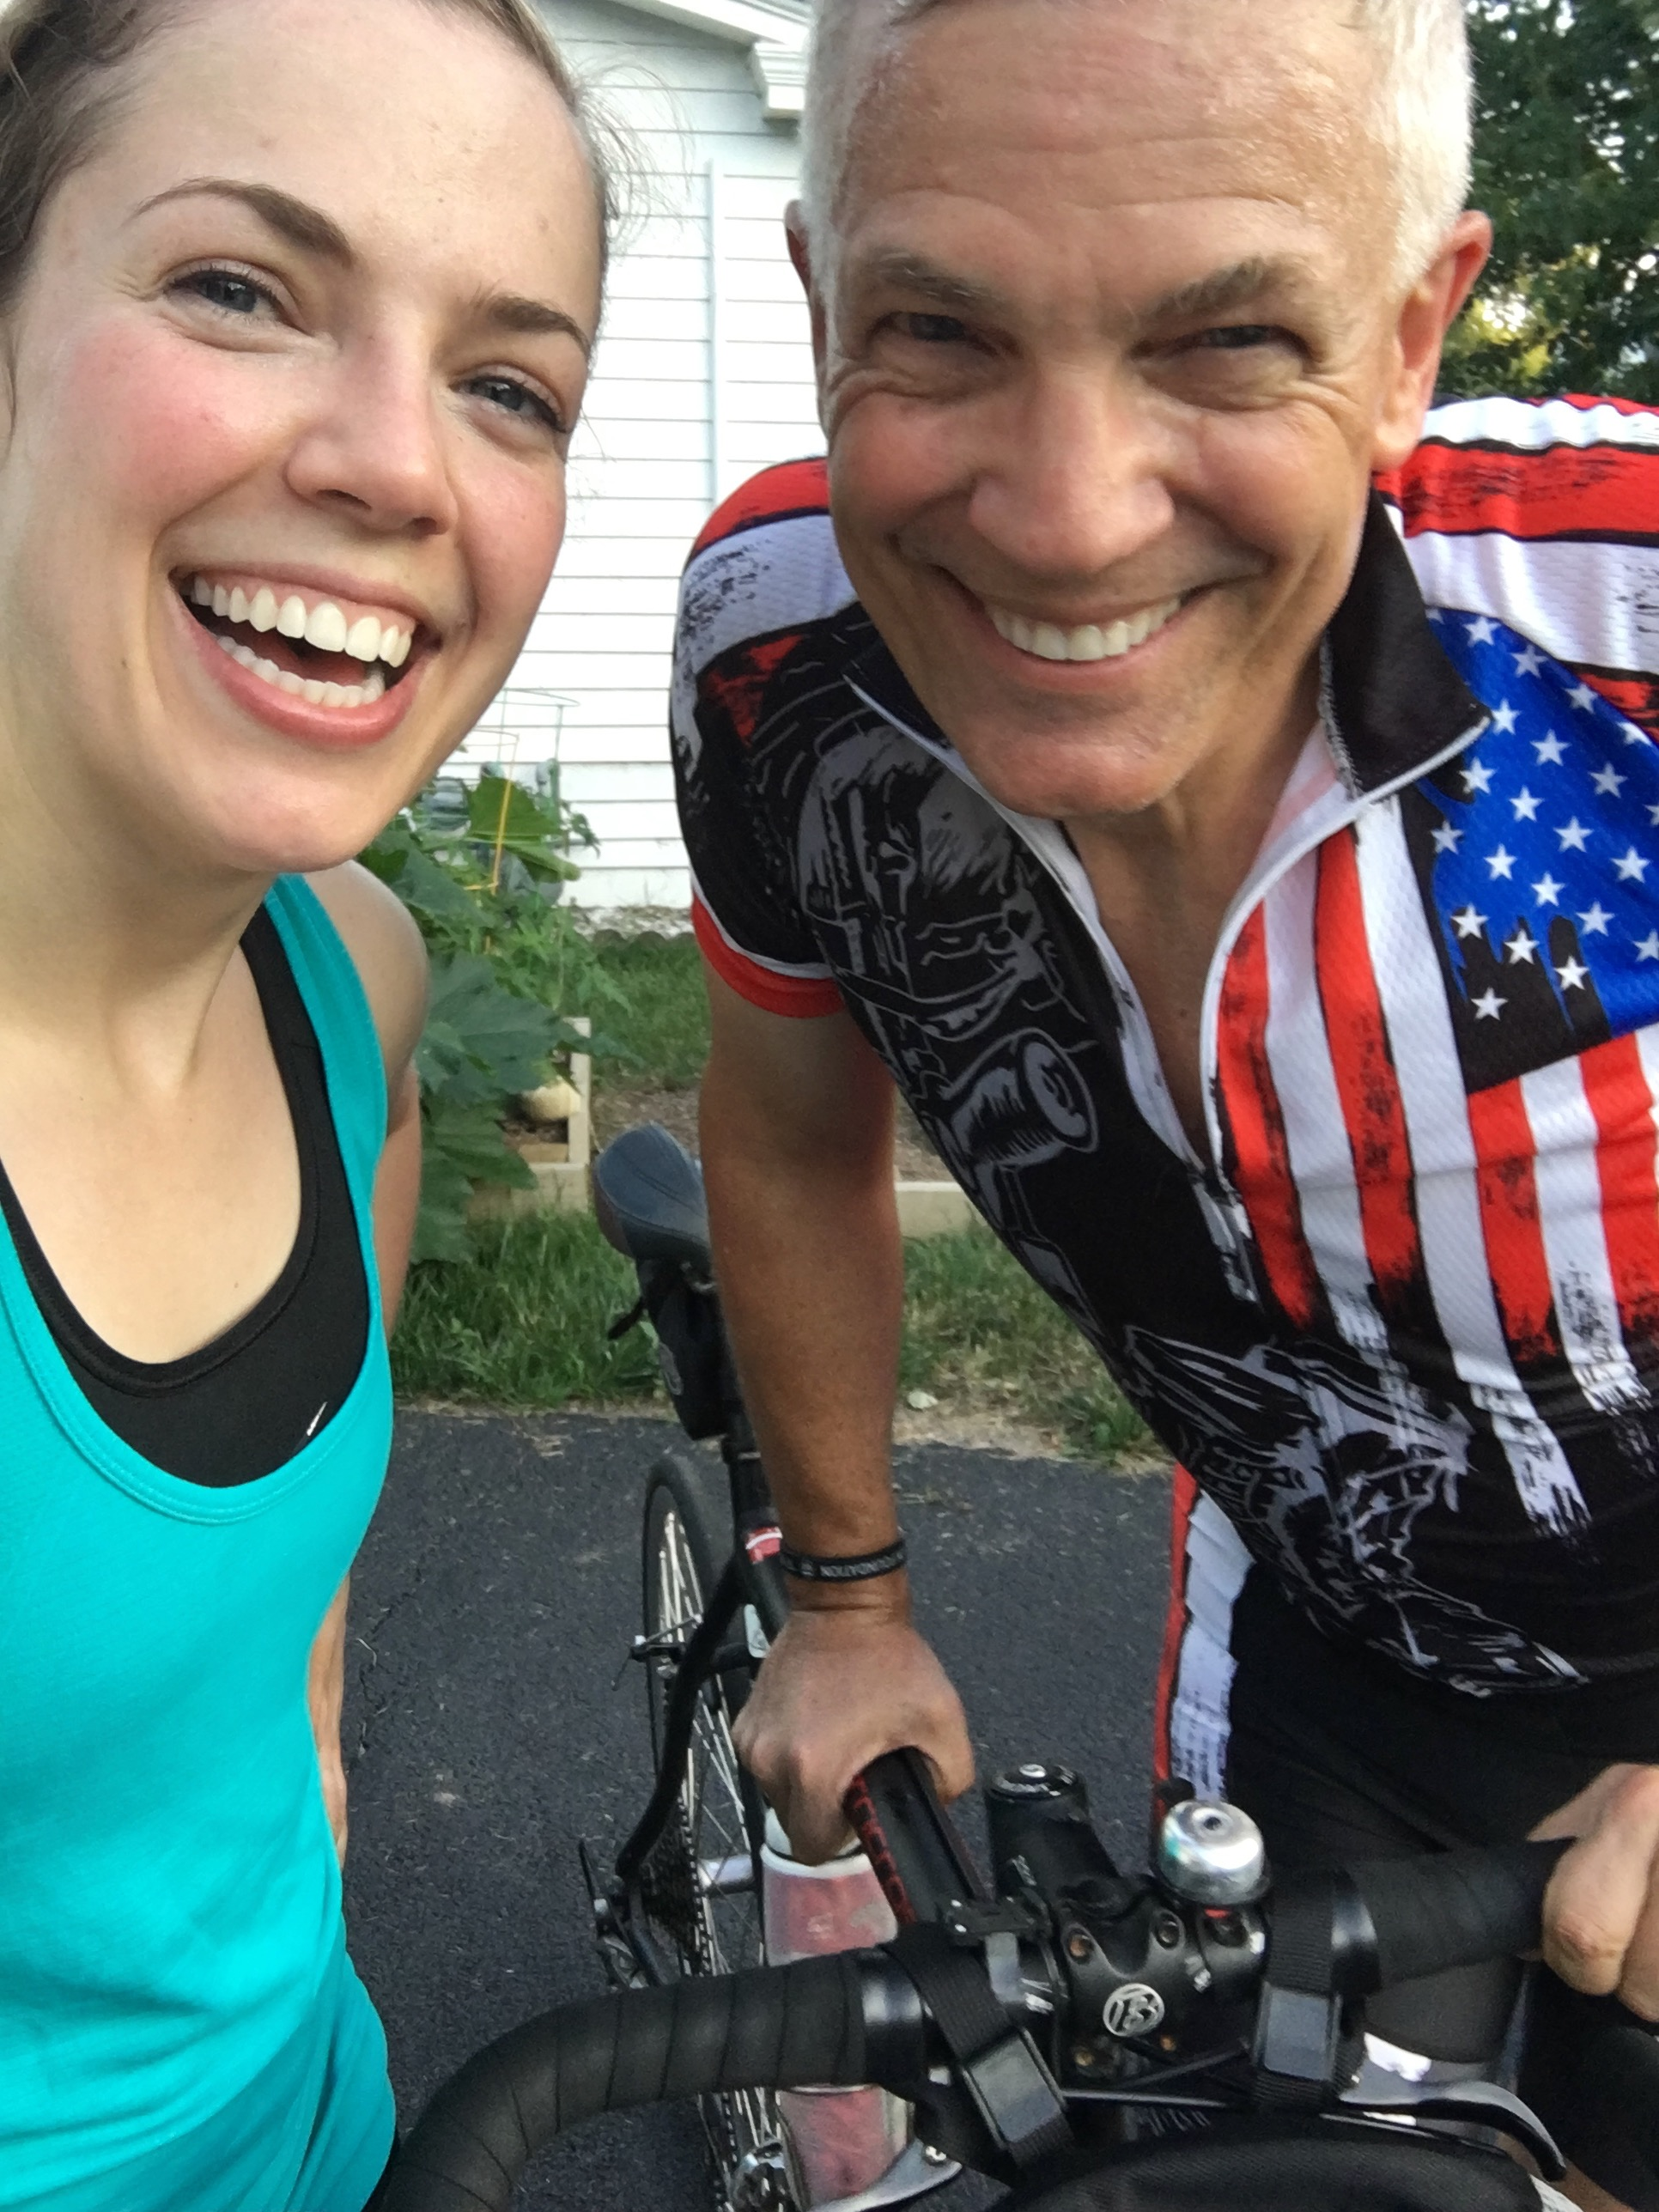 Abby and her Dad love biking and running together on the 50+ miles of trails near our home